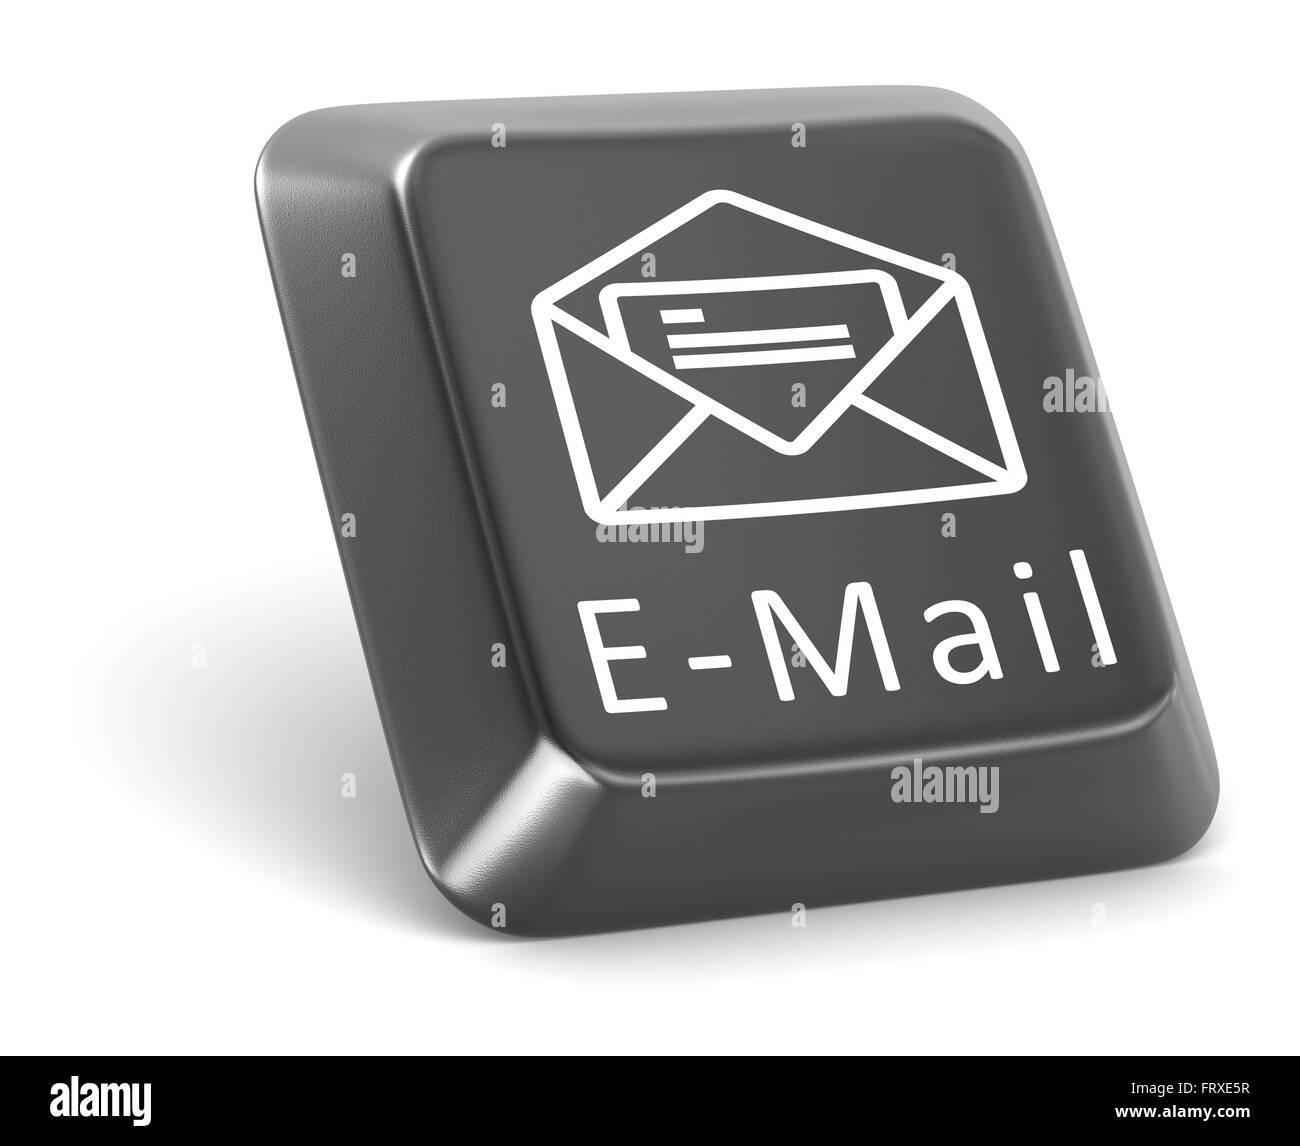 E-Mail Button - Stock Image